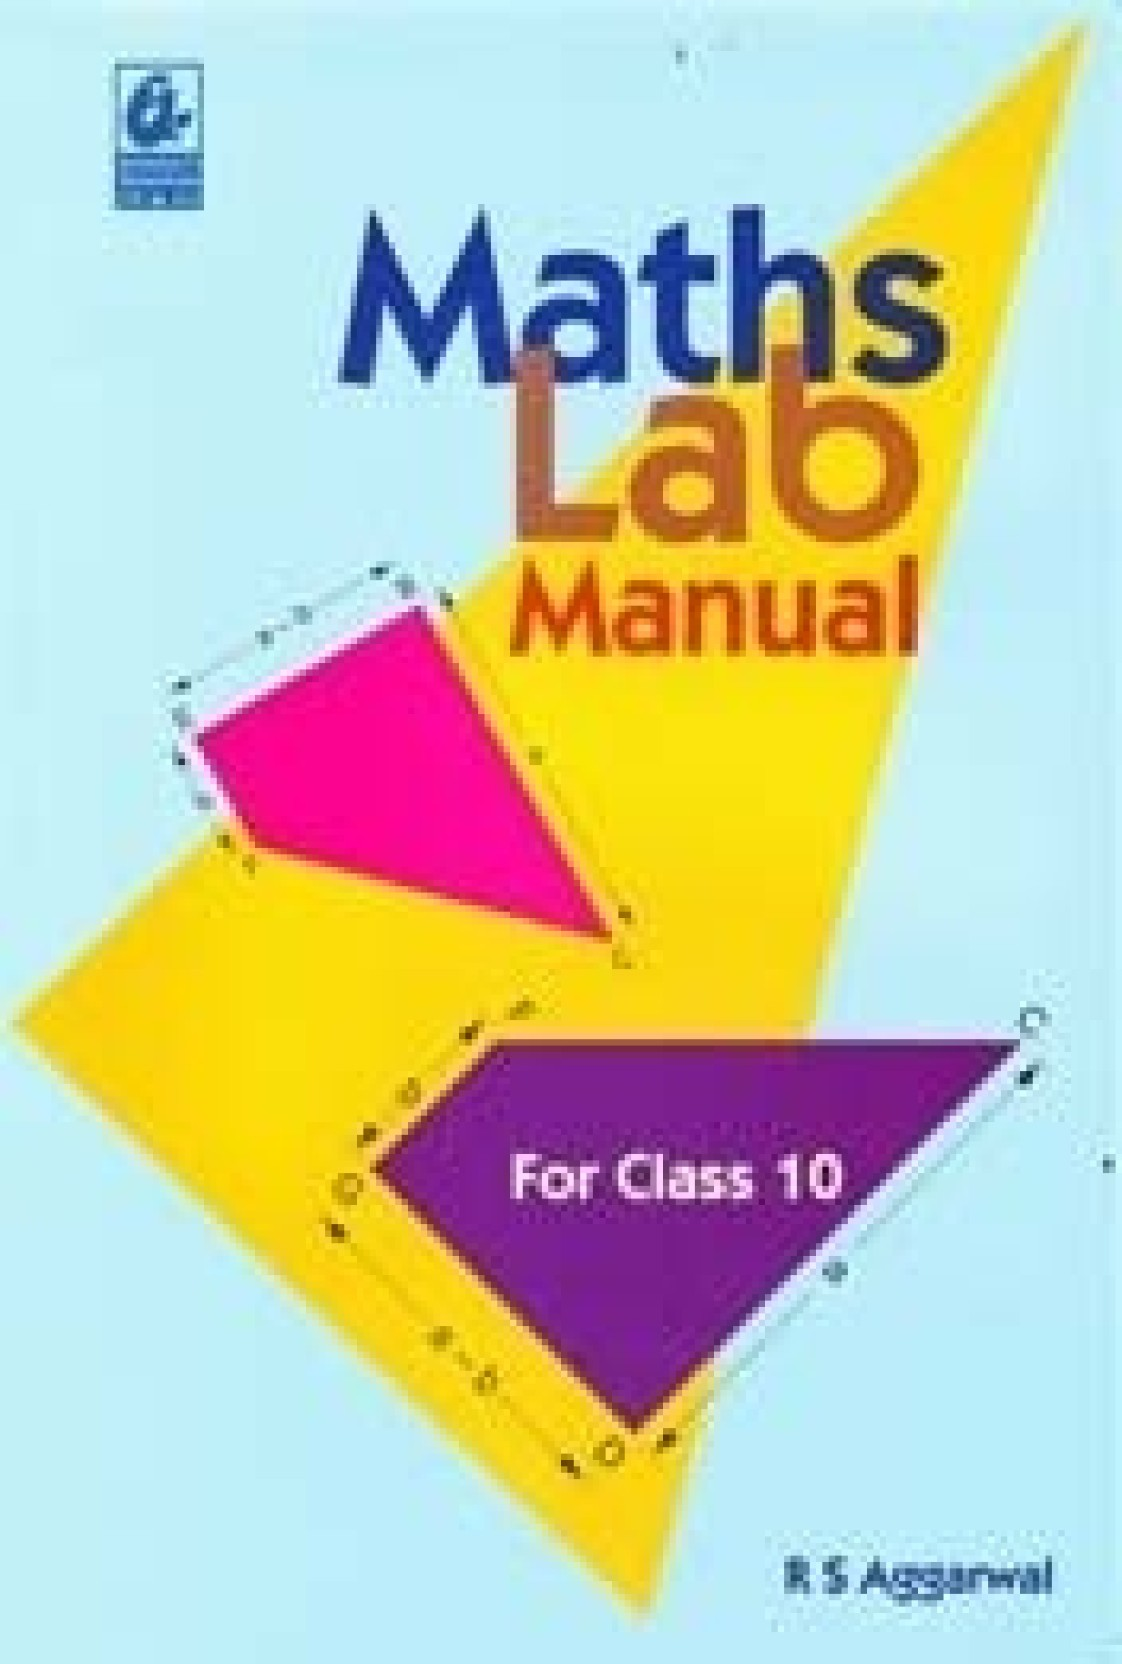 Maths Lab Manual For Class 10 / E1 01 Edition. ADD TO CART